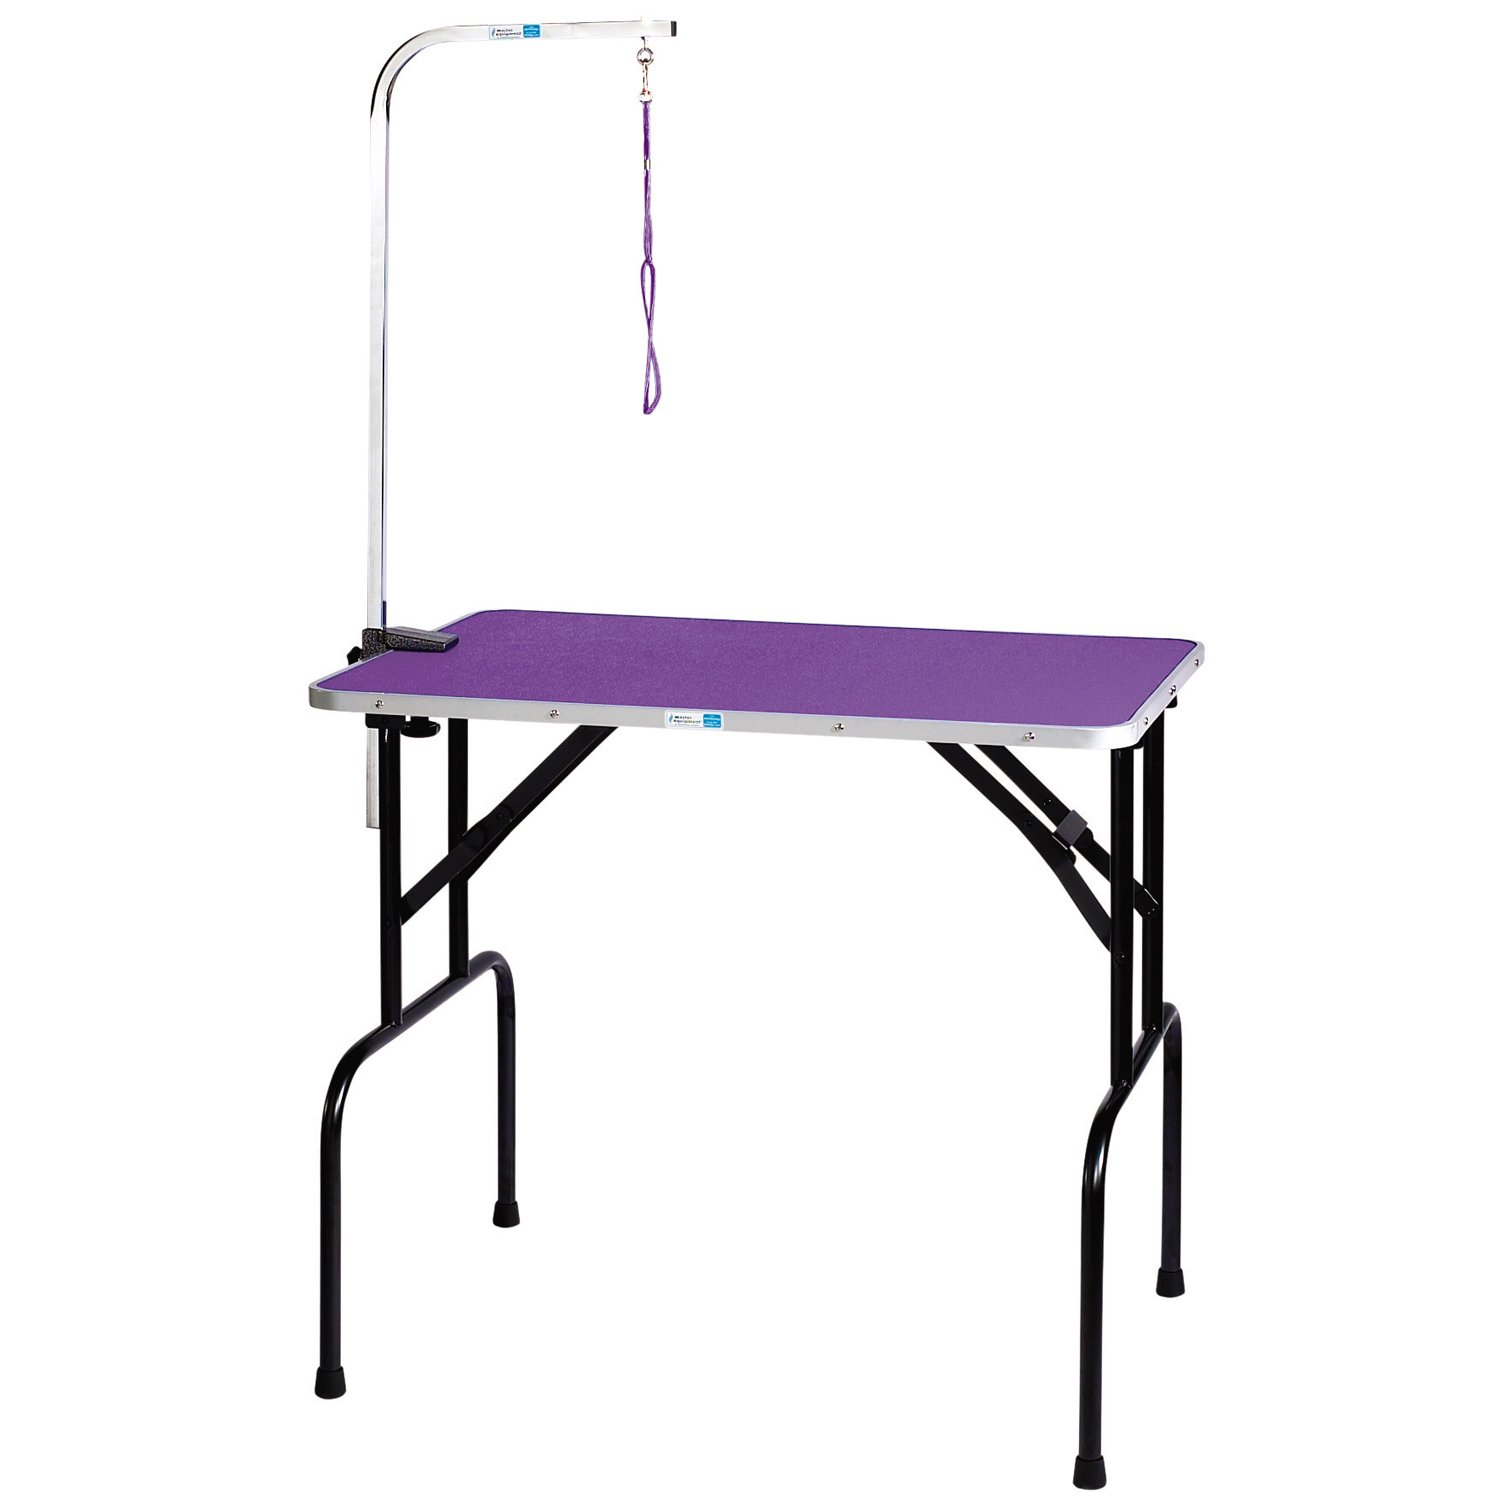 Master Equipment Foldable, Portable Pet Grooming Table by Master Equipment